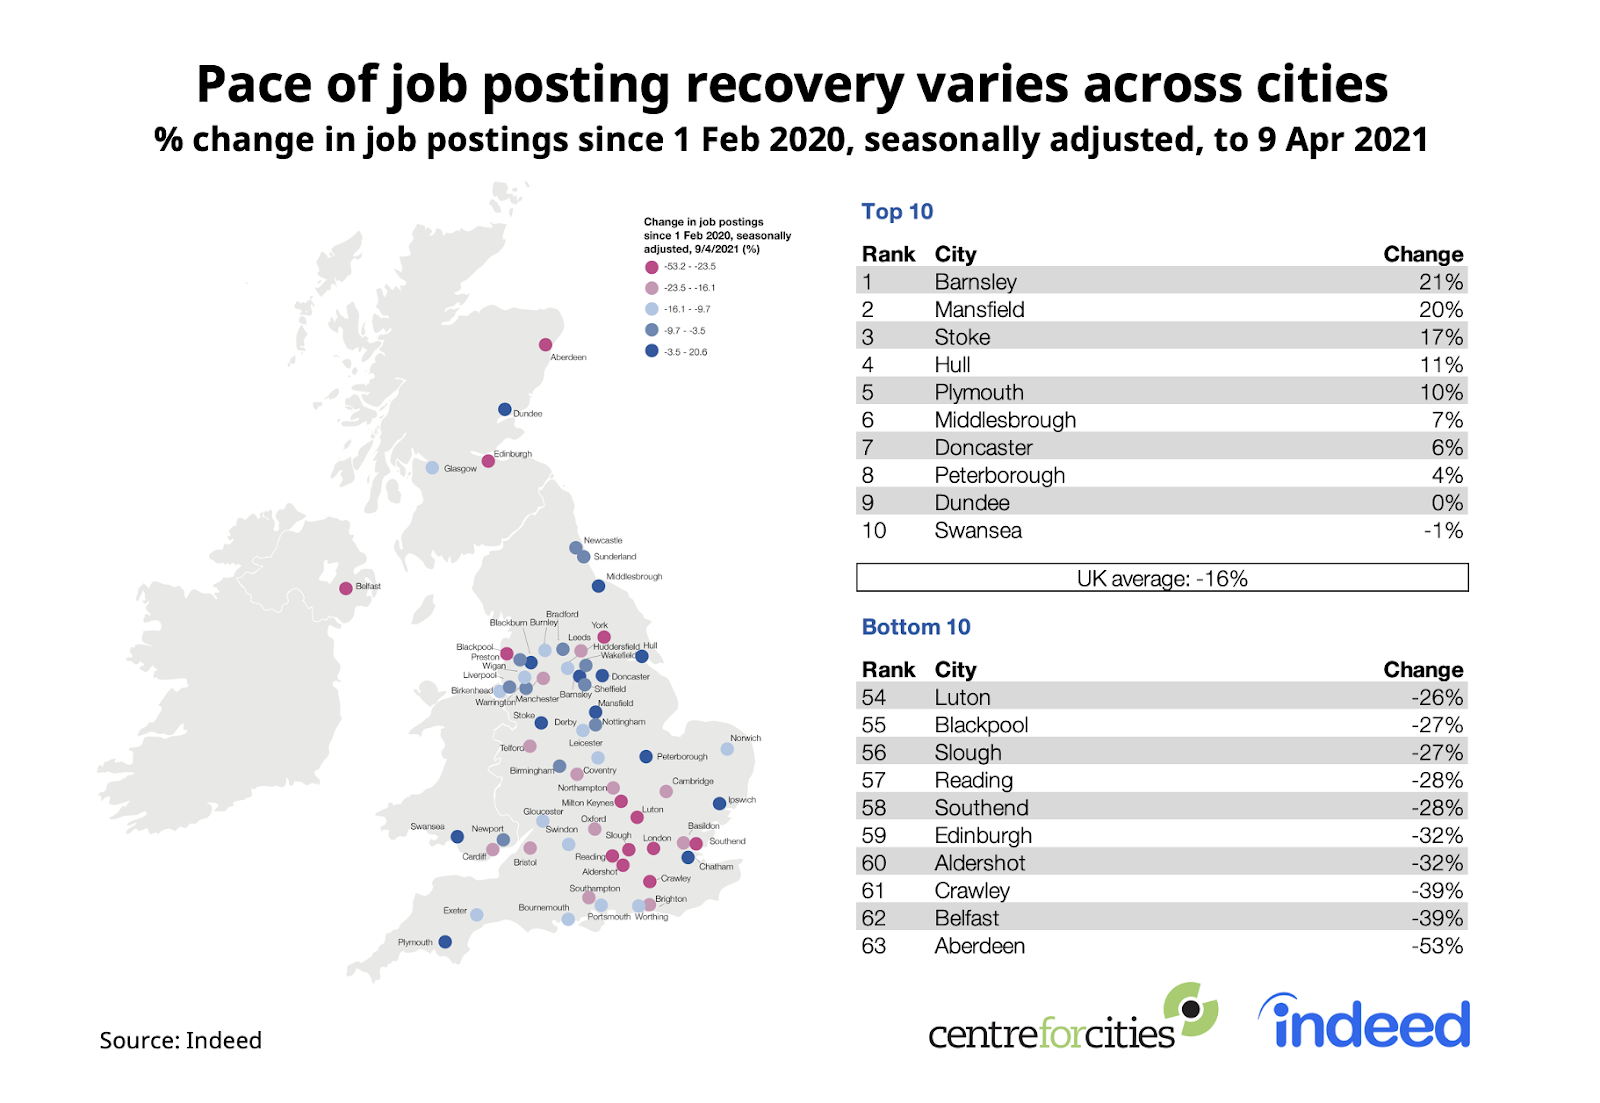 A labeled map alongside two tables showing the pace of job recovery varies across cities in the UK